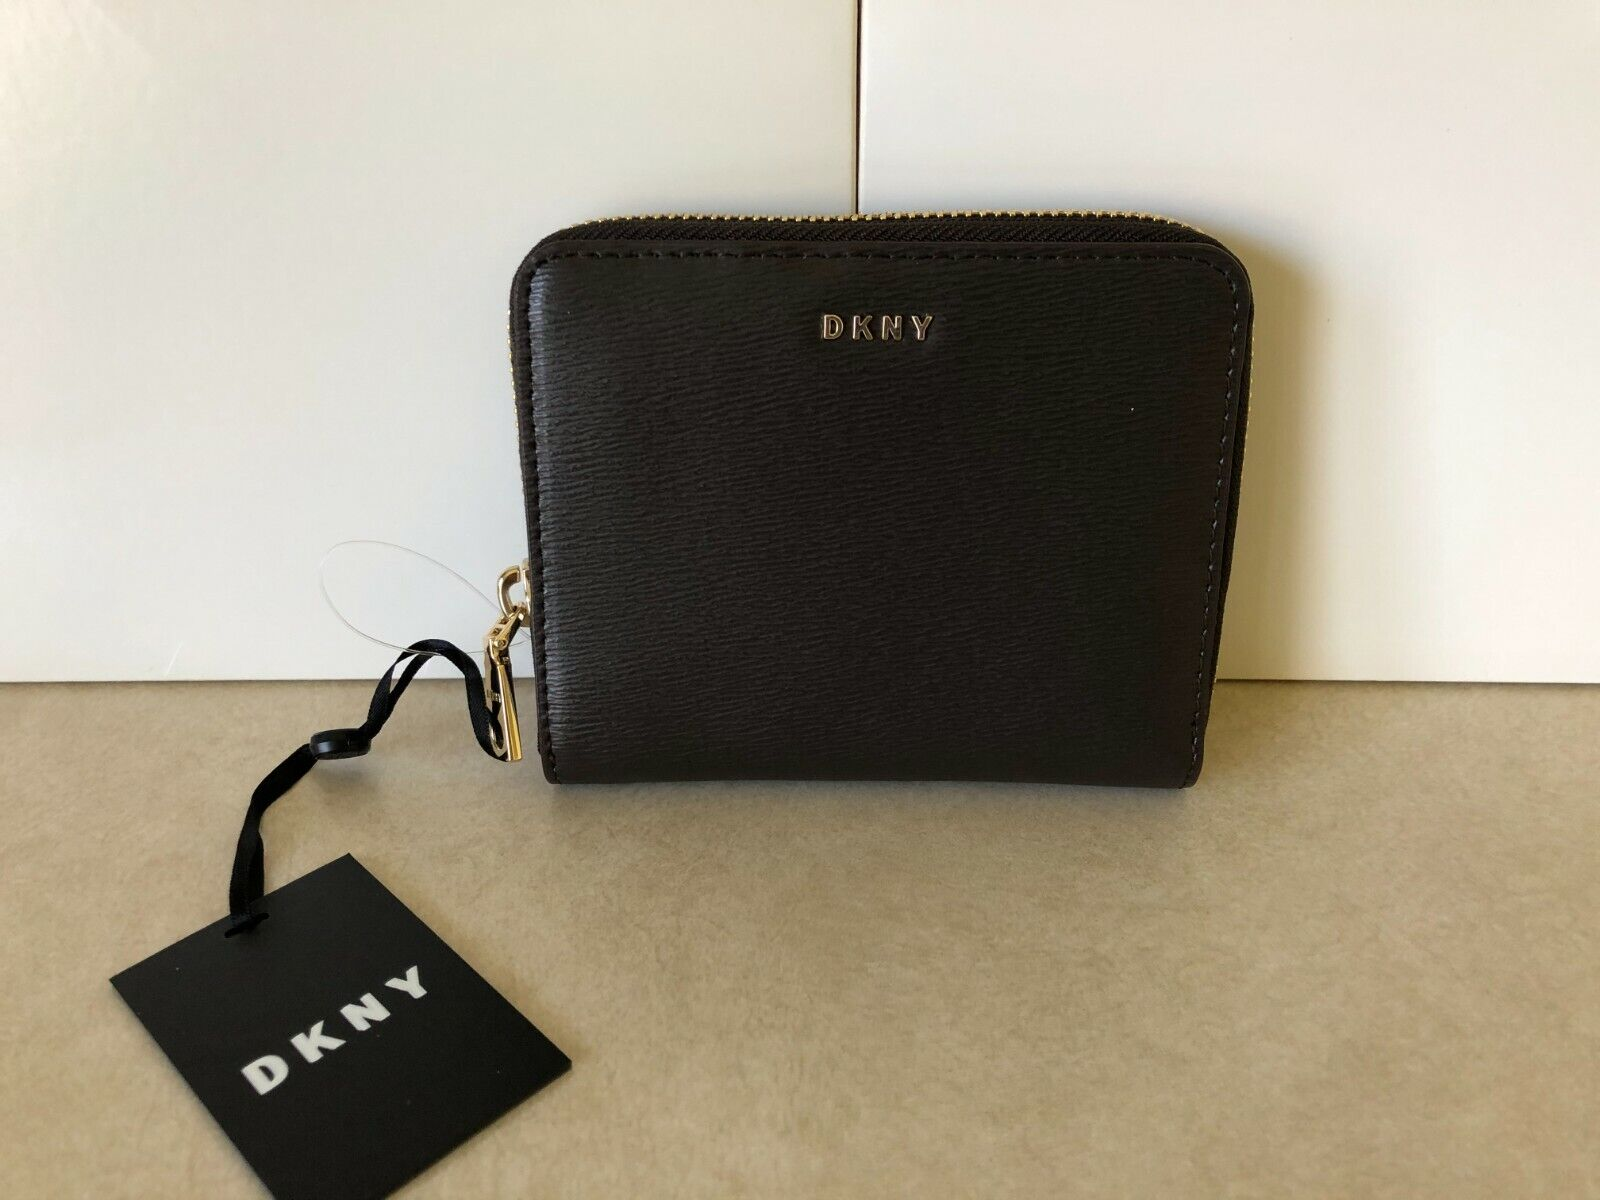 NWT DKNY Women's Bryant Small Leather Zip Around Wallet